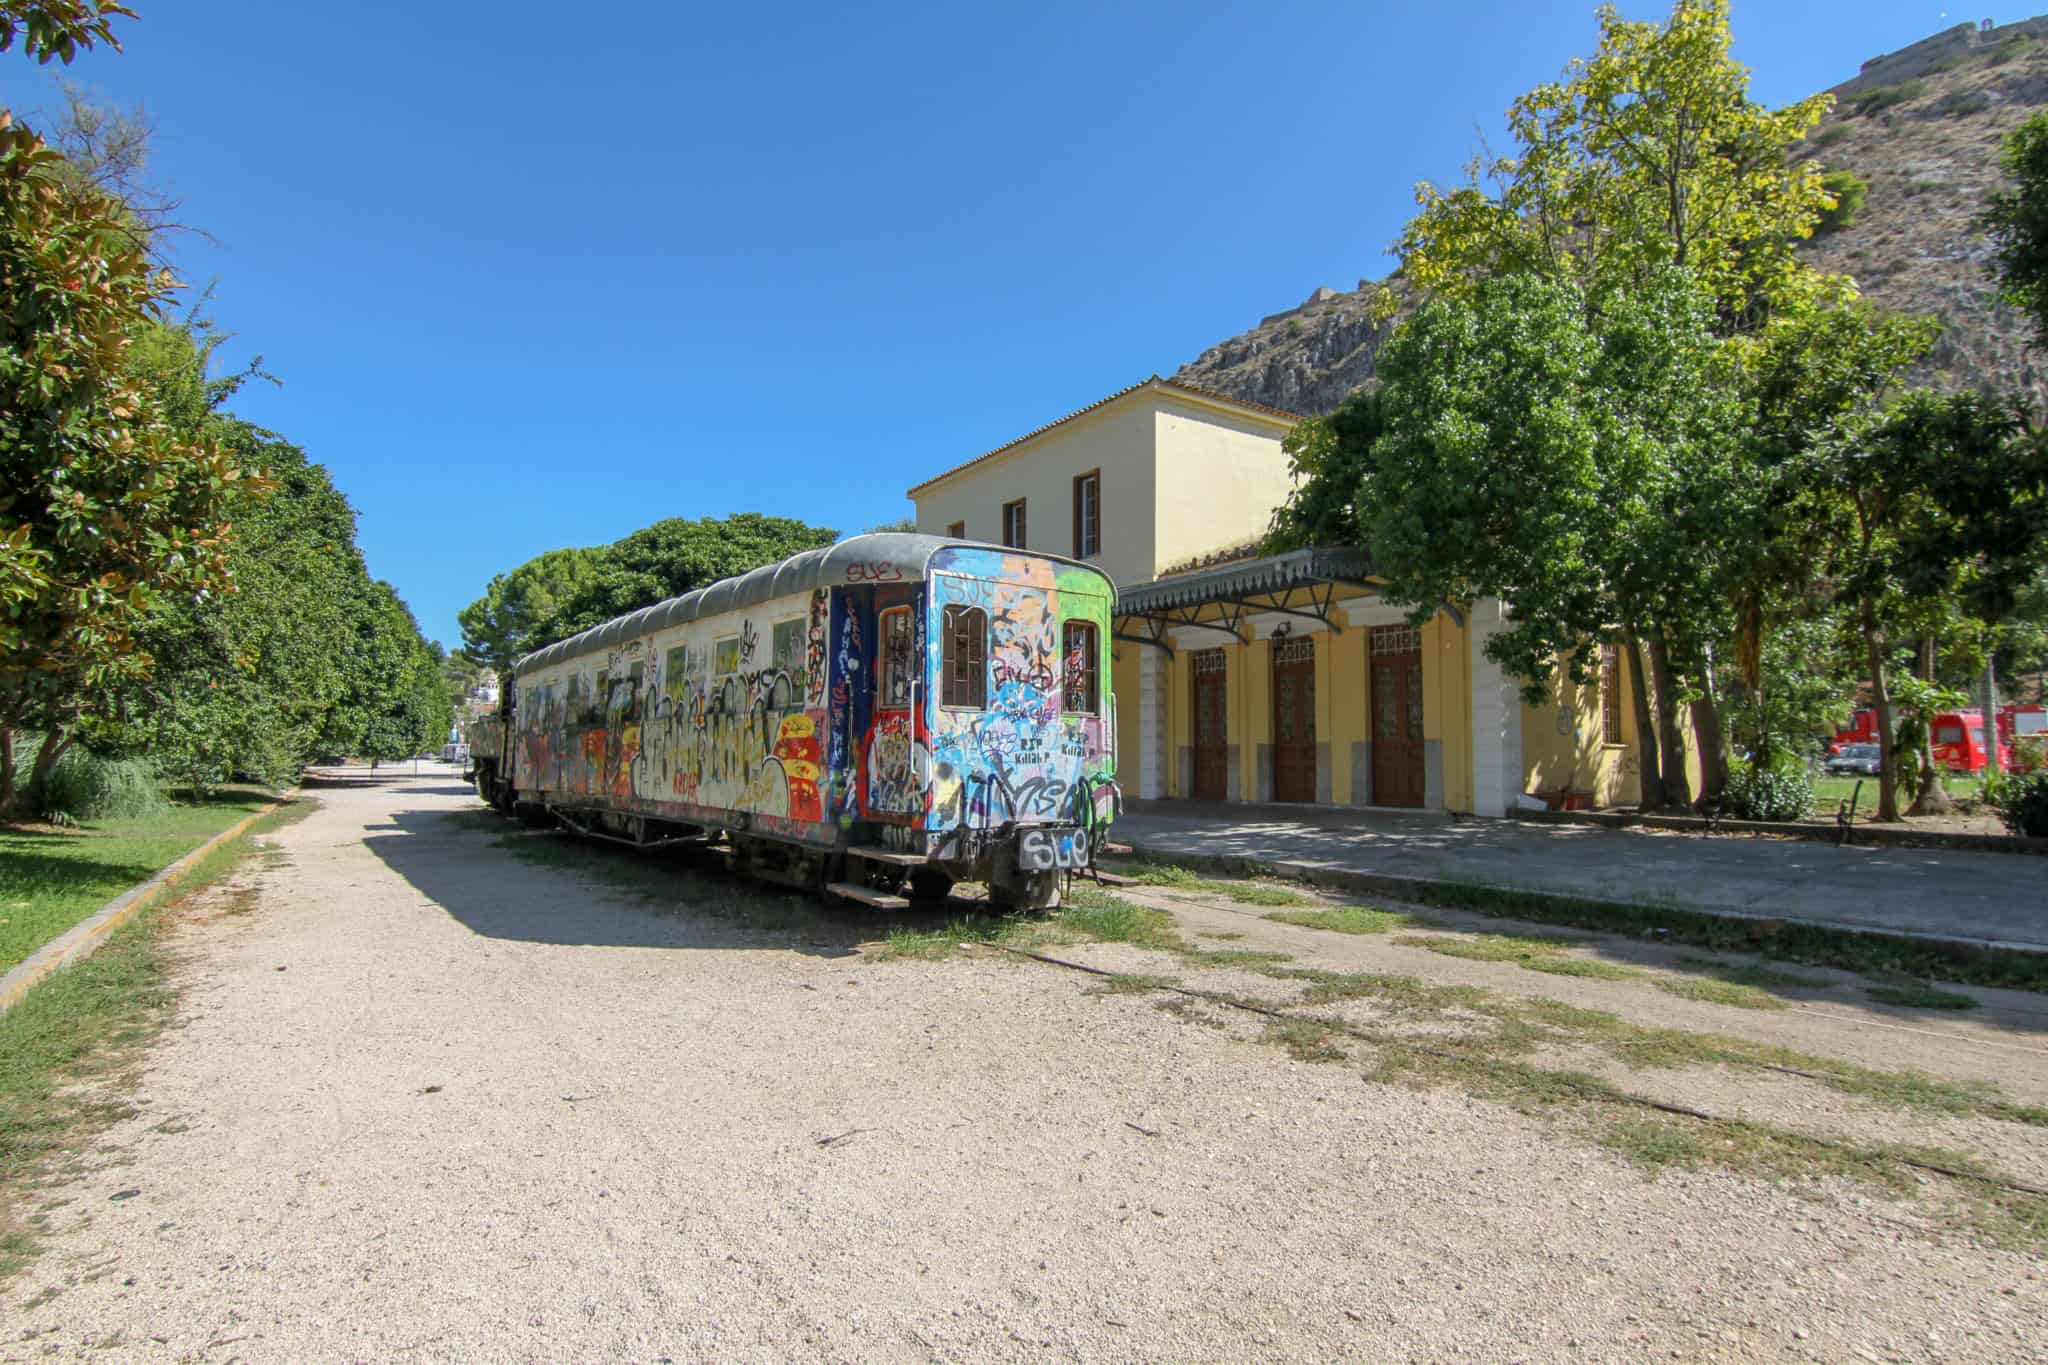 Nafplion Railway Park is one of the things to check out in Nafplio